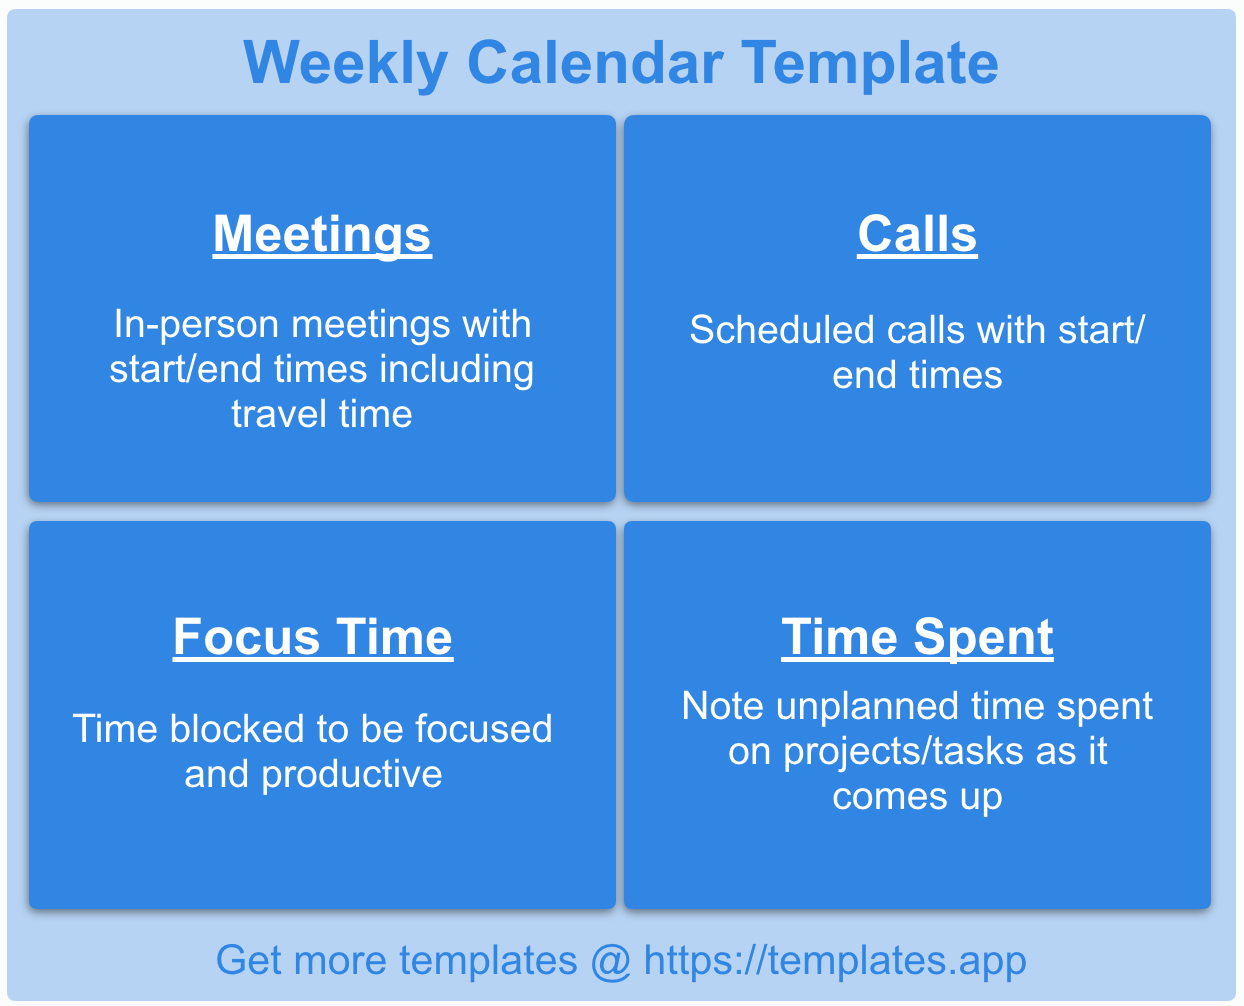 Weekly Calendar Template by Templates.App